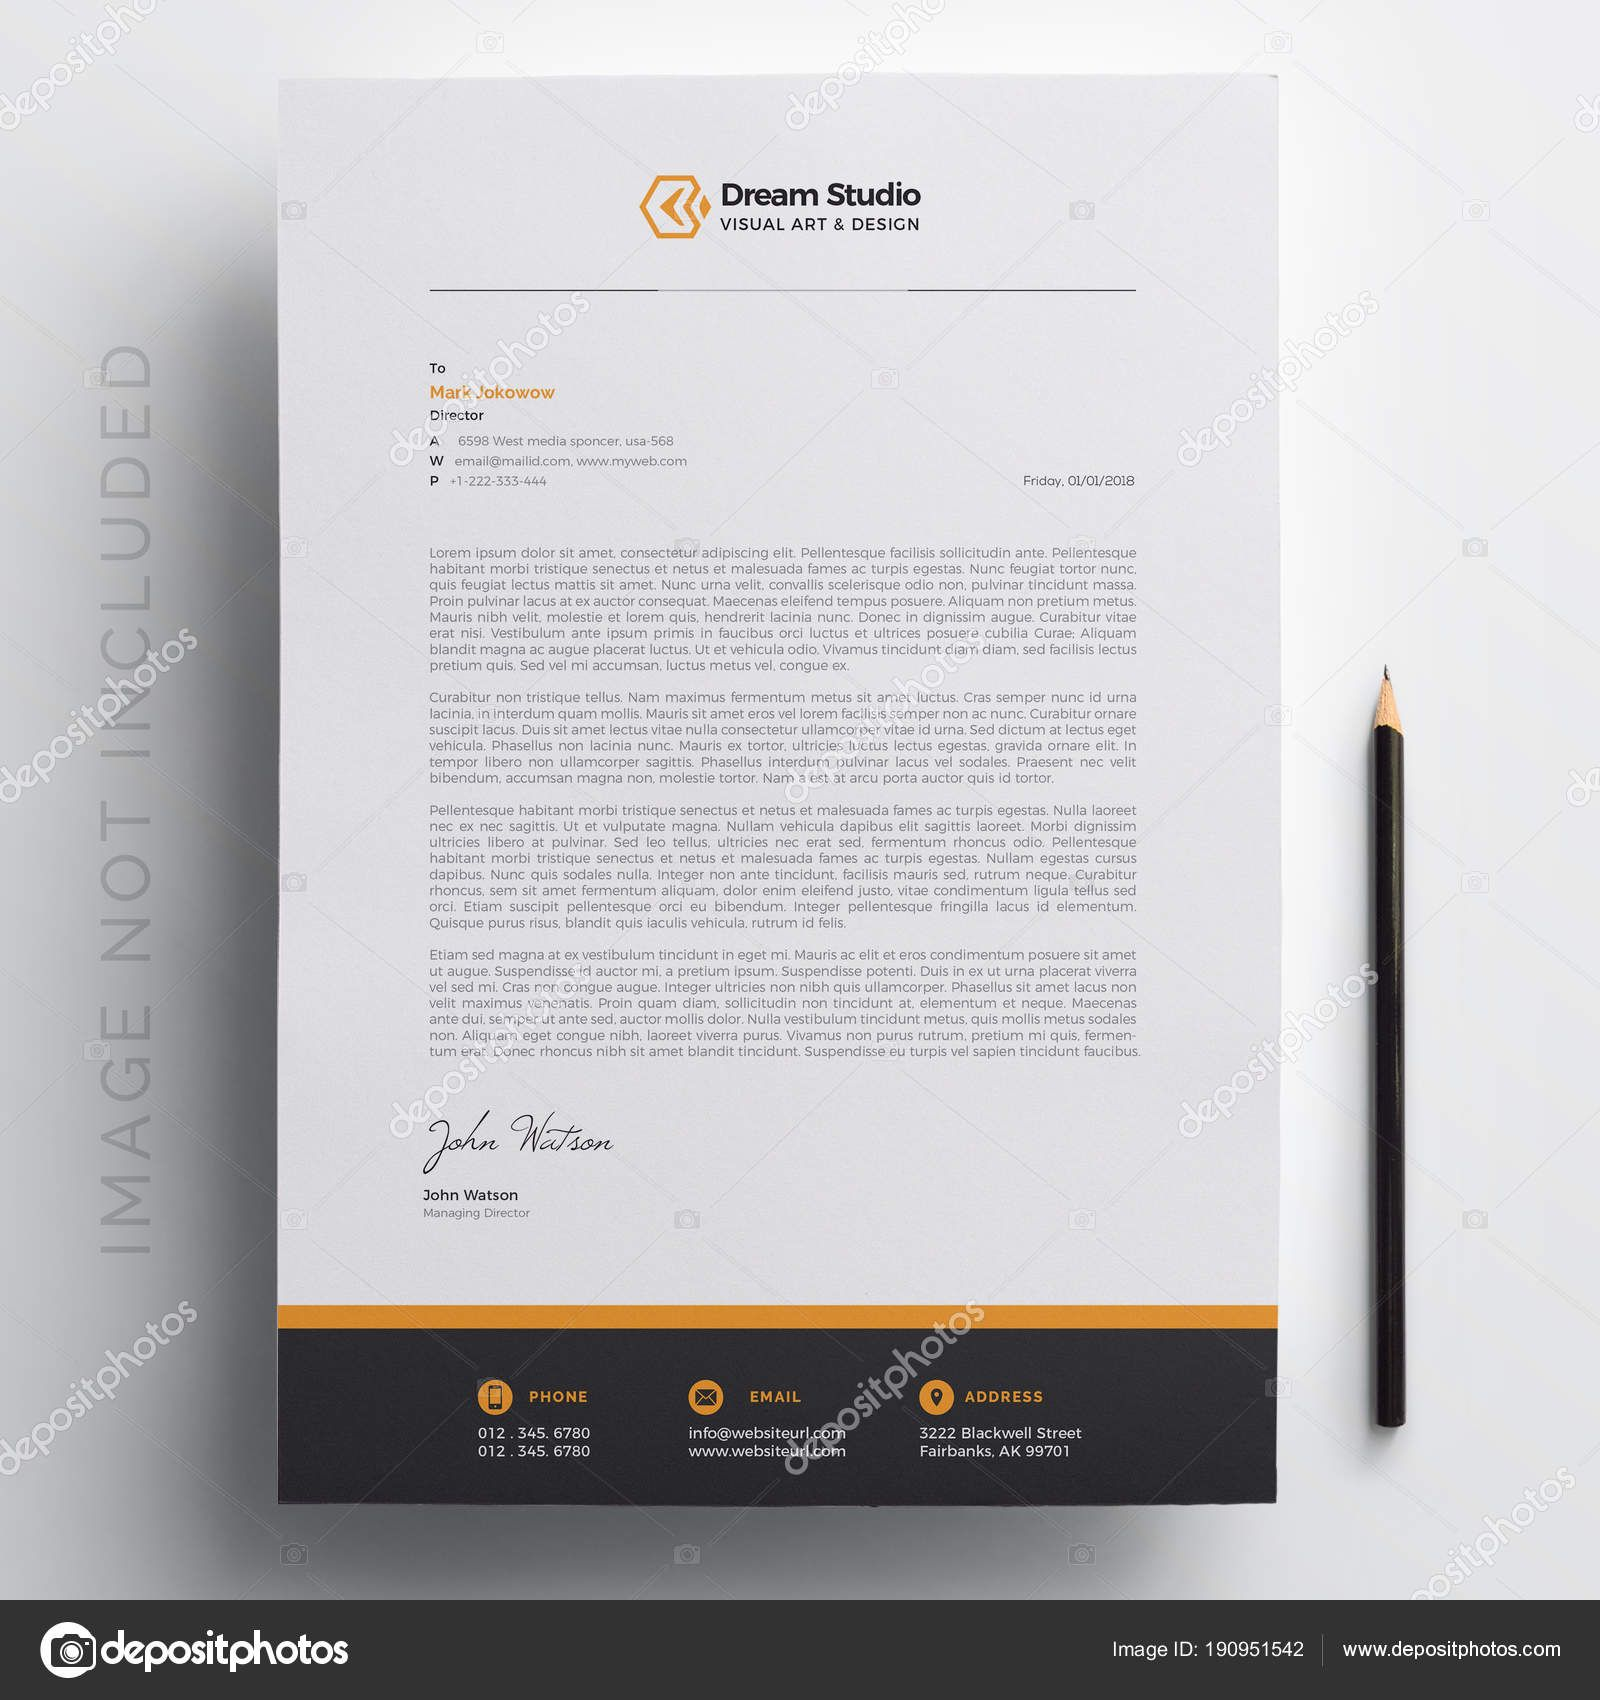 Download - Modern Company Letterhead Template — Stock Illustration ...